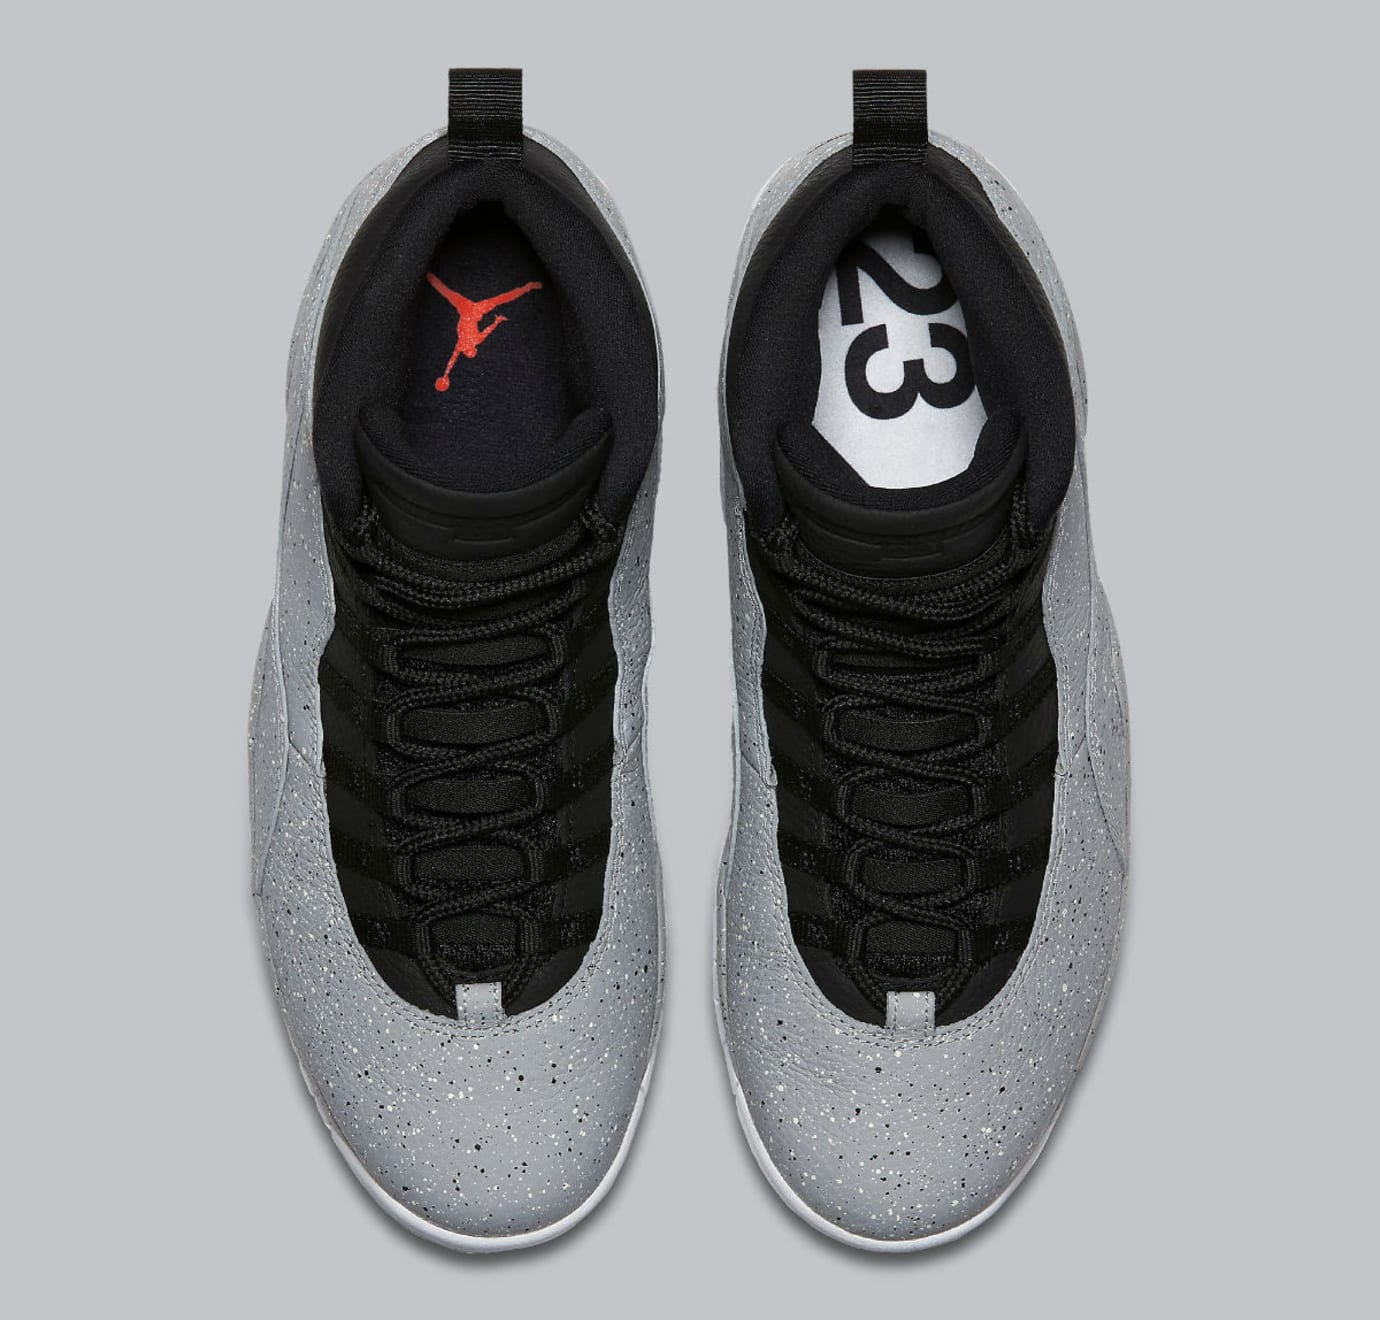 Image via Nike Air Jordan 10 X Cement Release Date 310805-062 Top 8b7af74ac